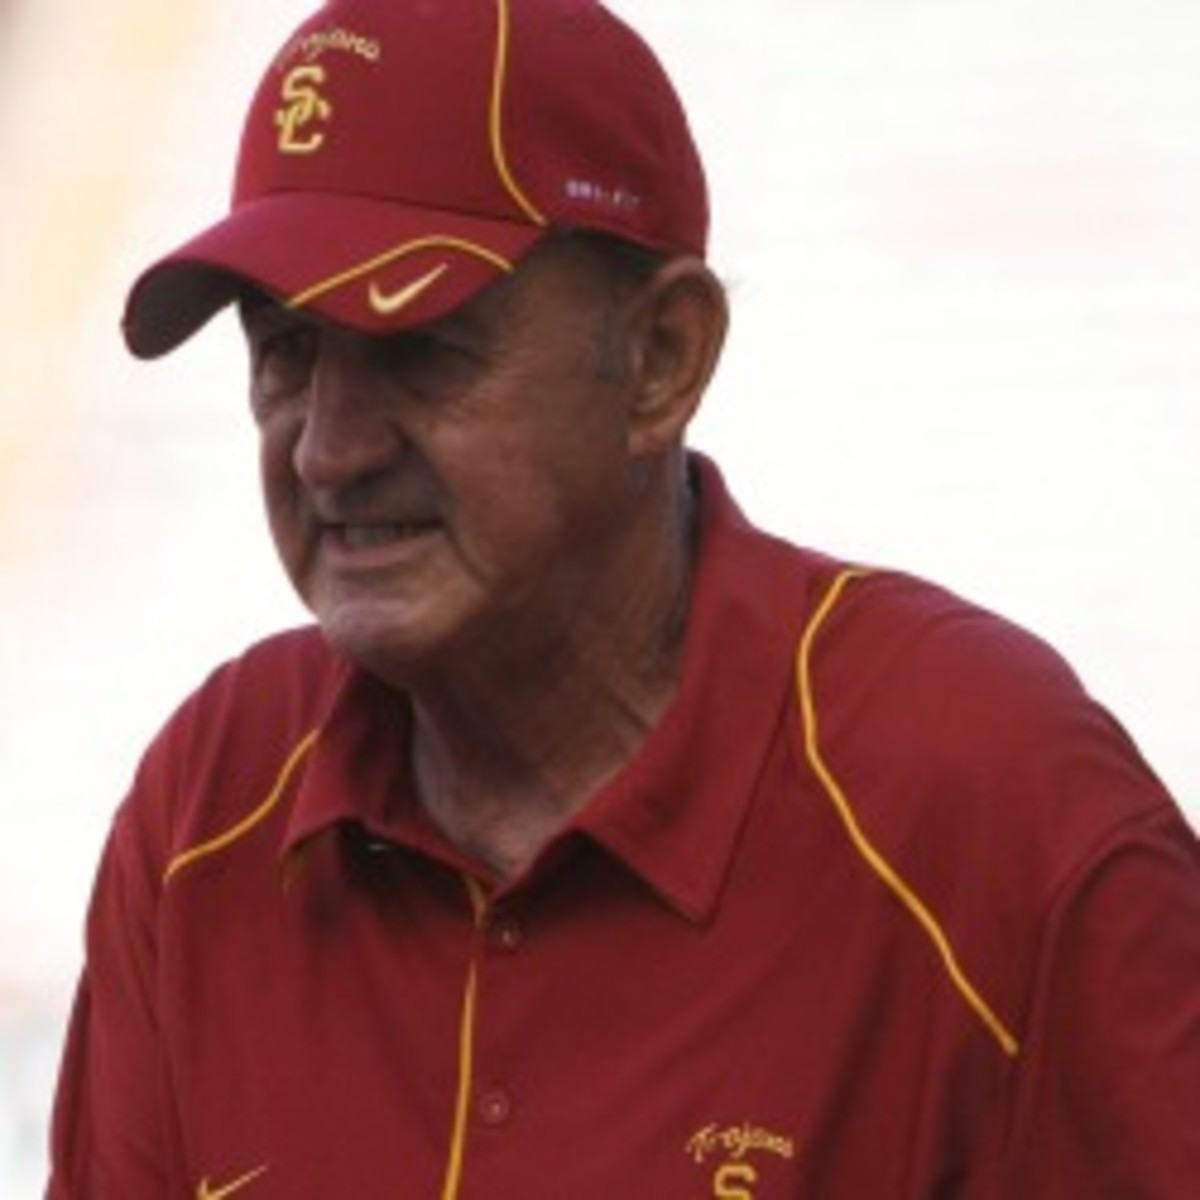 USC defensive coordinator Monte Kiffin is the nation's highest-paid assistant football coach at an estimated $1.5 million. (Kent Nishimura/Getty Images